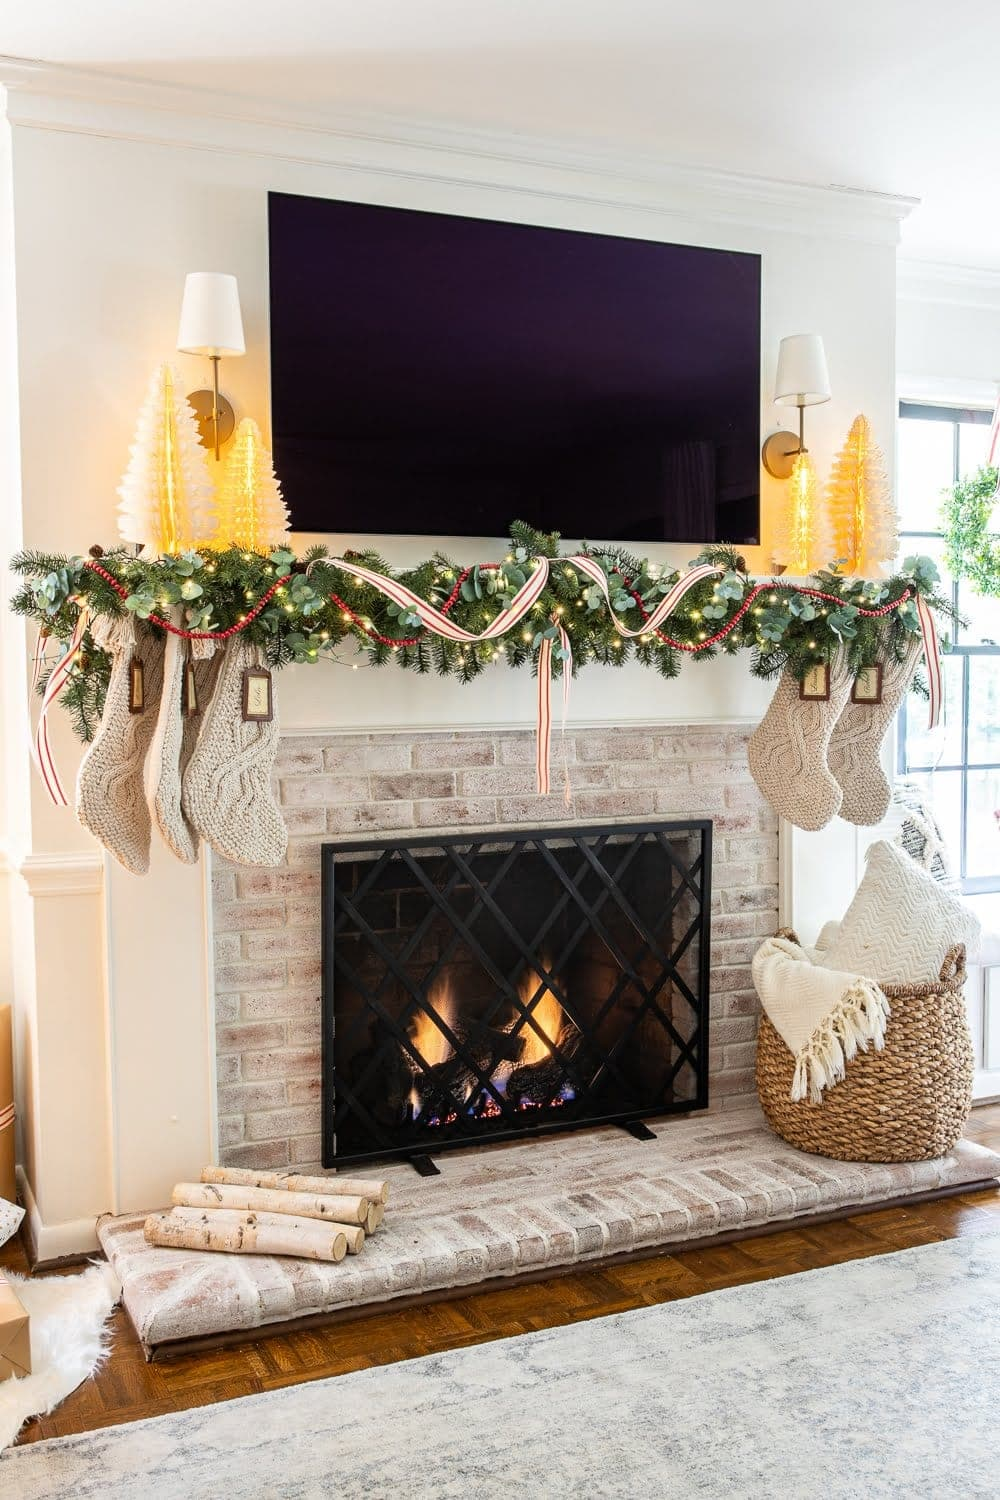 Christmas decor ideas | Christmas mantel decor with TV